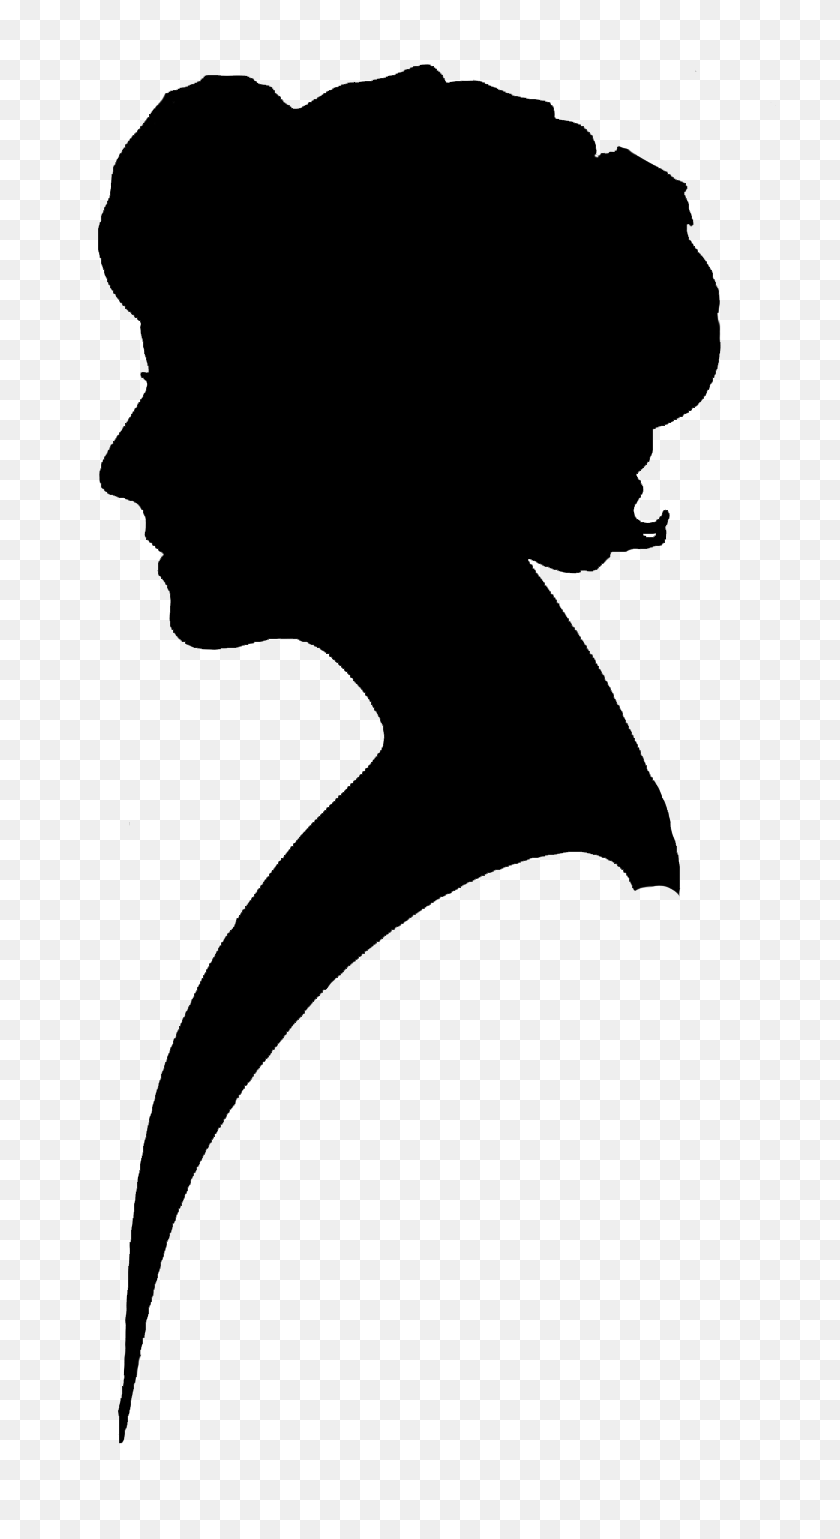 hight resolution of two black footprint silhouettes ladies golfing clipart